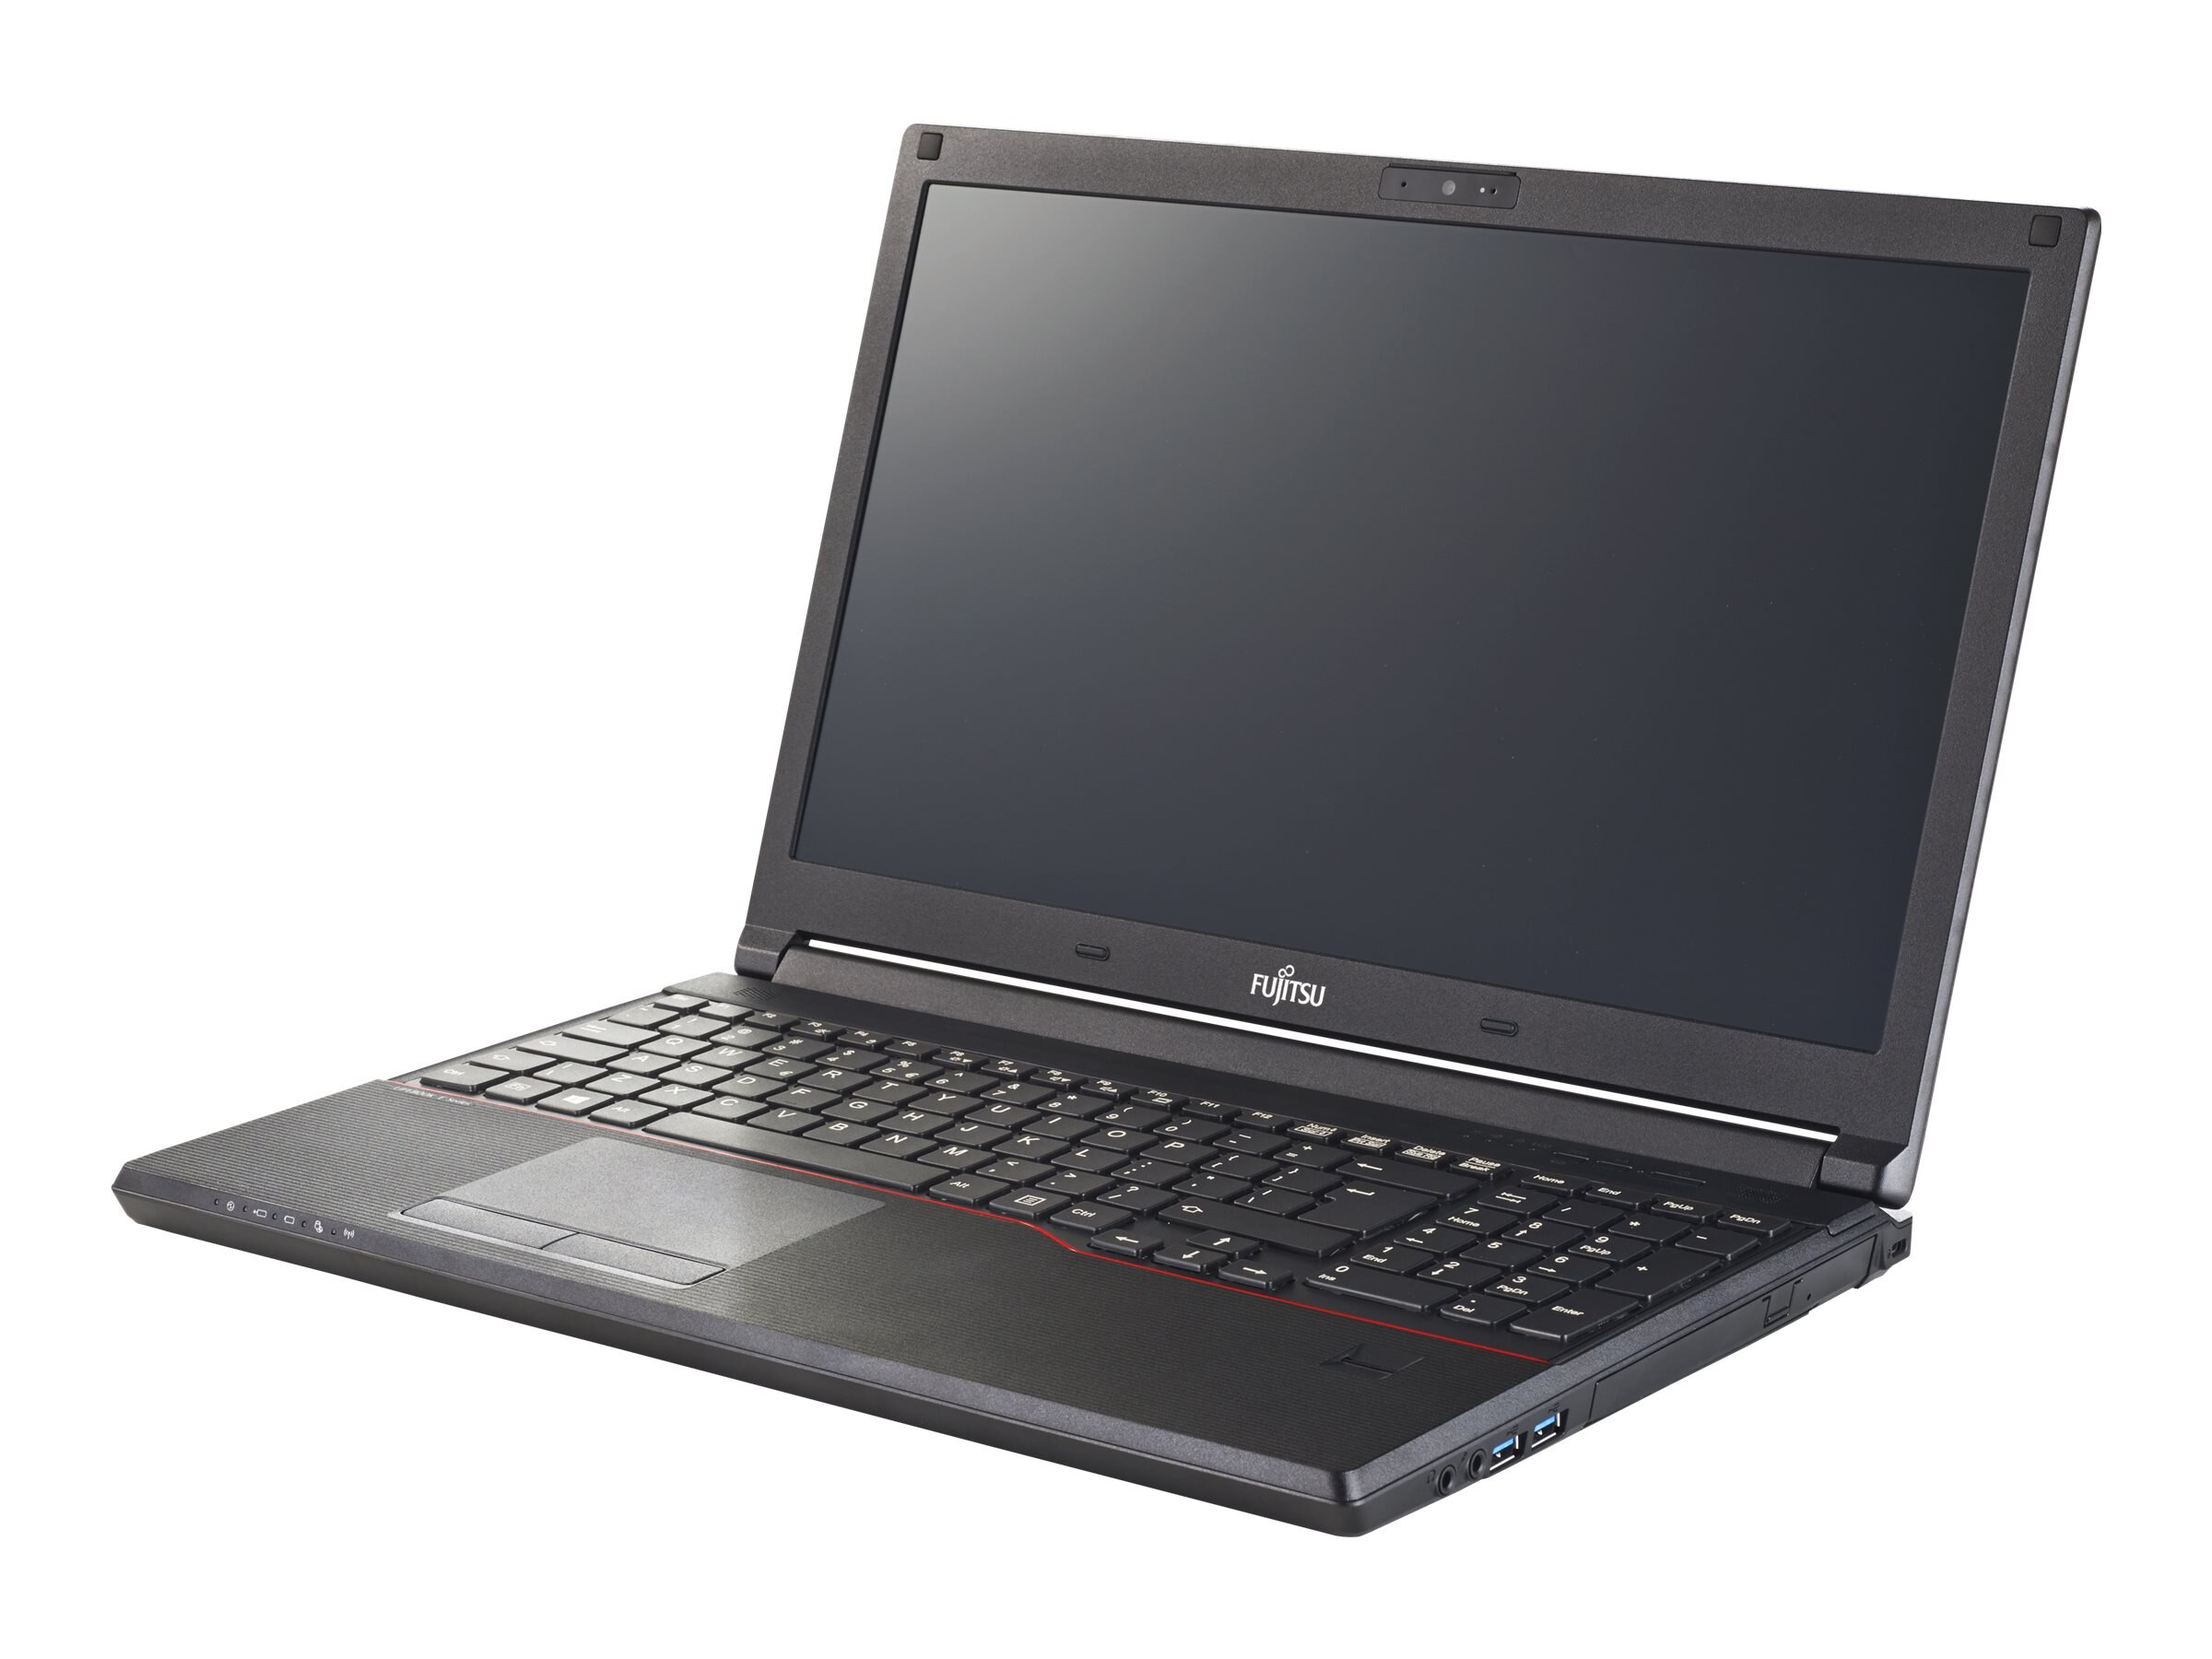 Fujitsu LifeBook E556 2.3GHz Core i5 15.6in display, SPFC-E556-001, 31895097, Notebooks